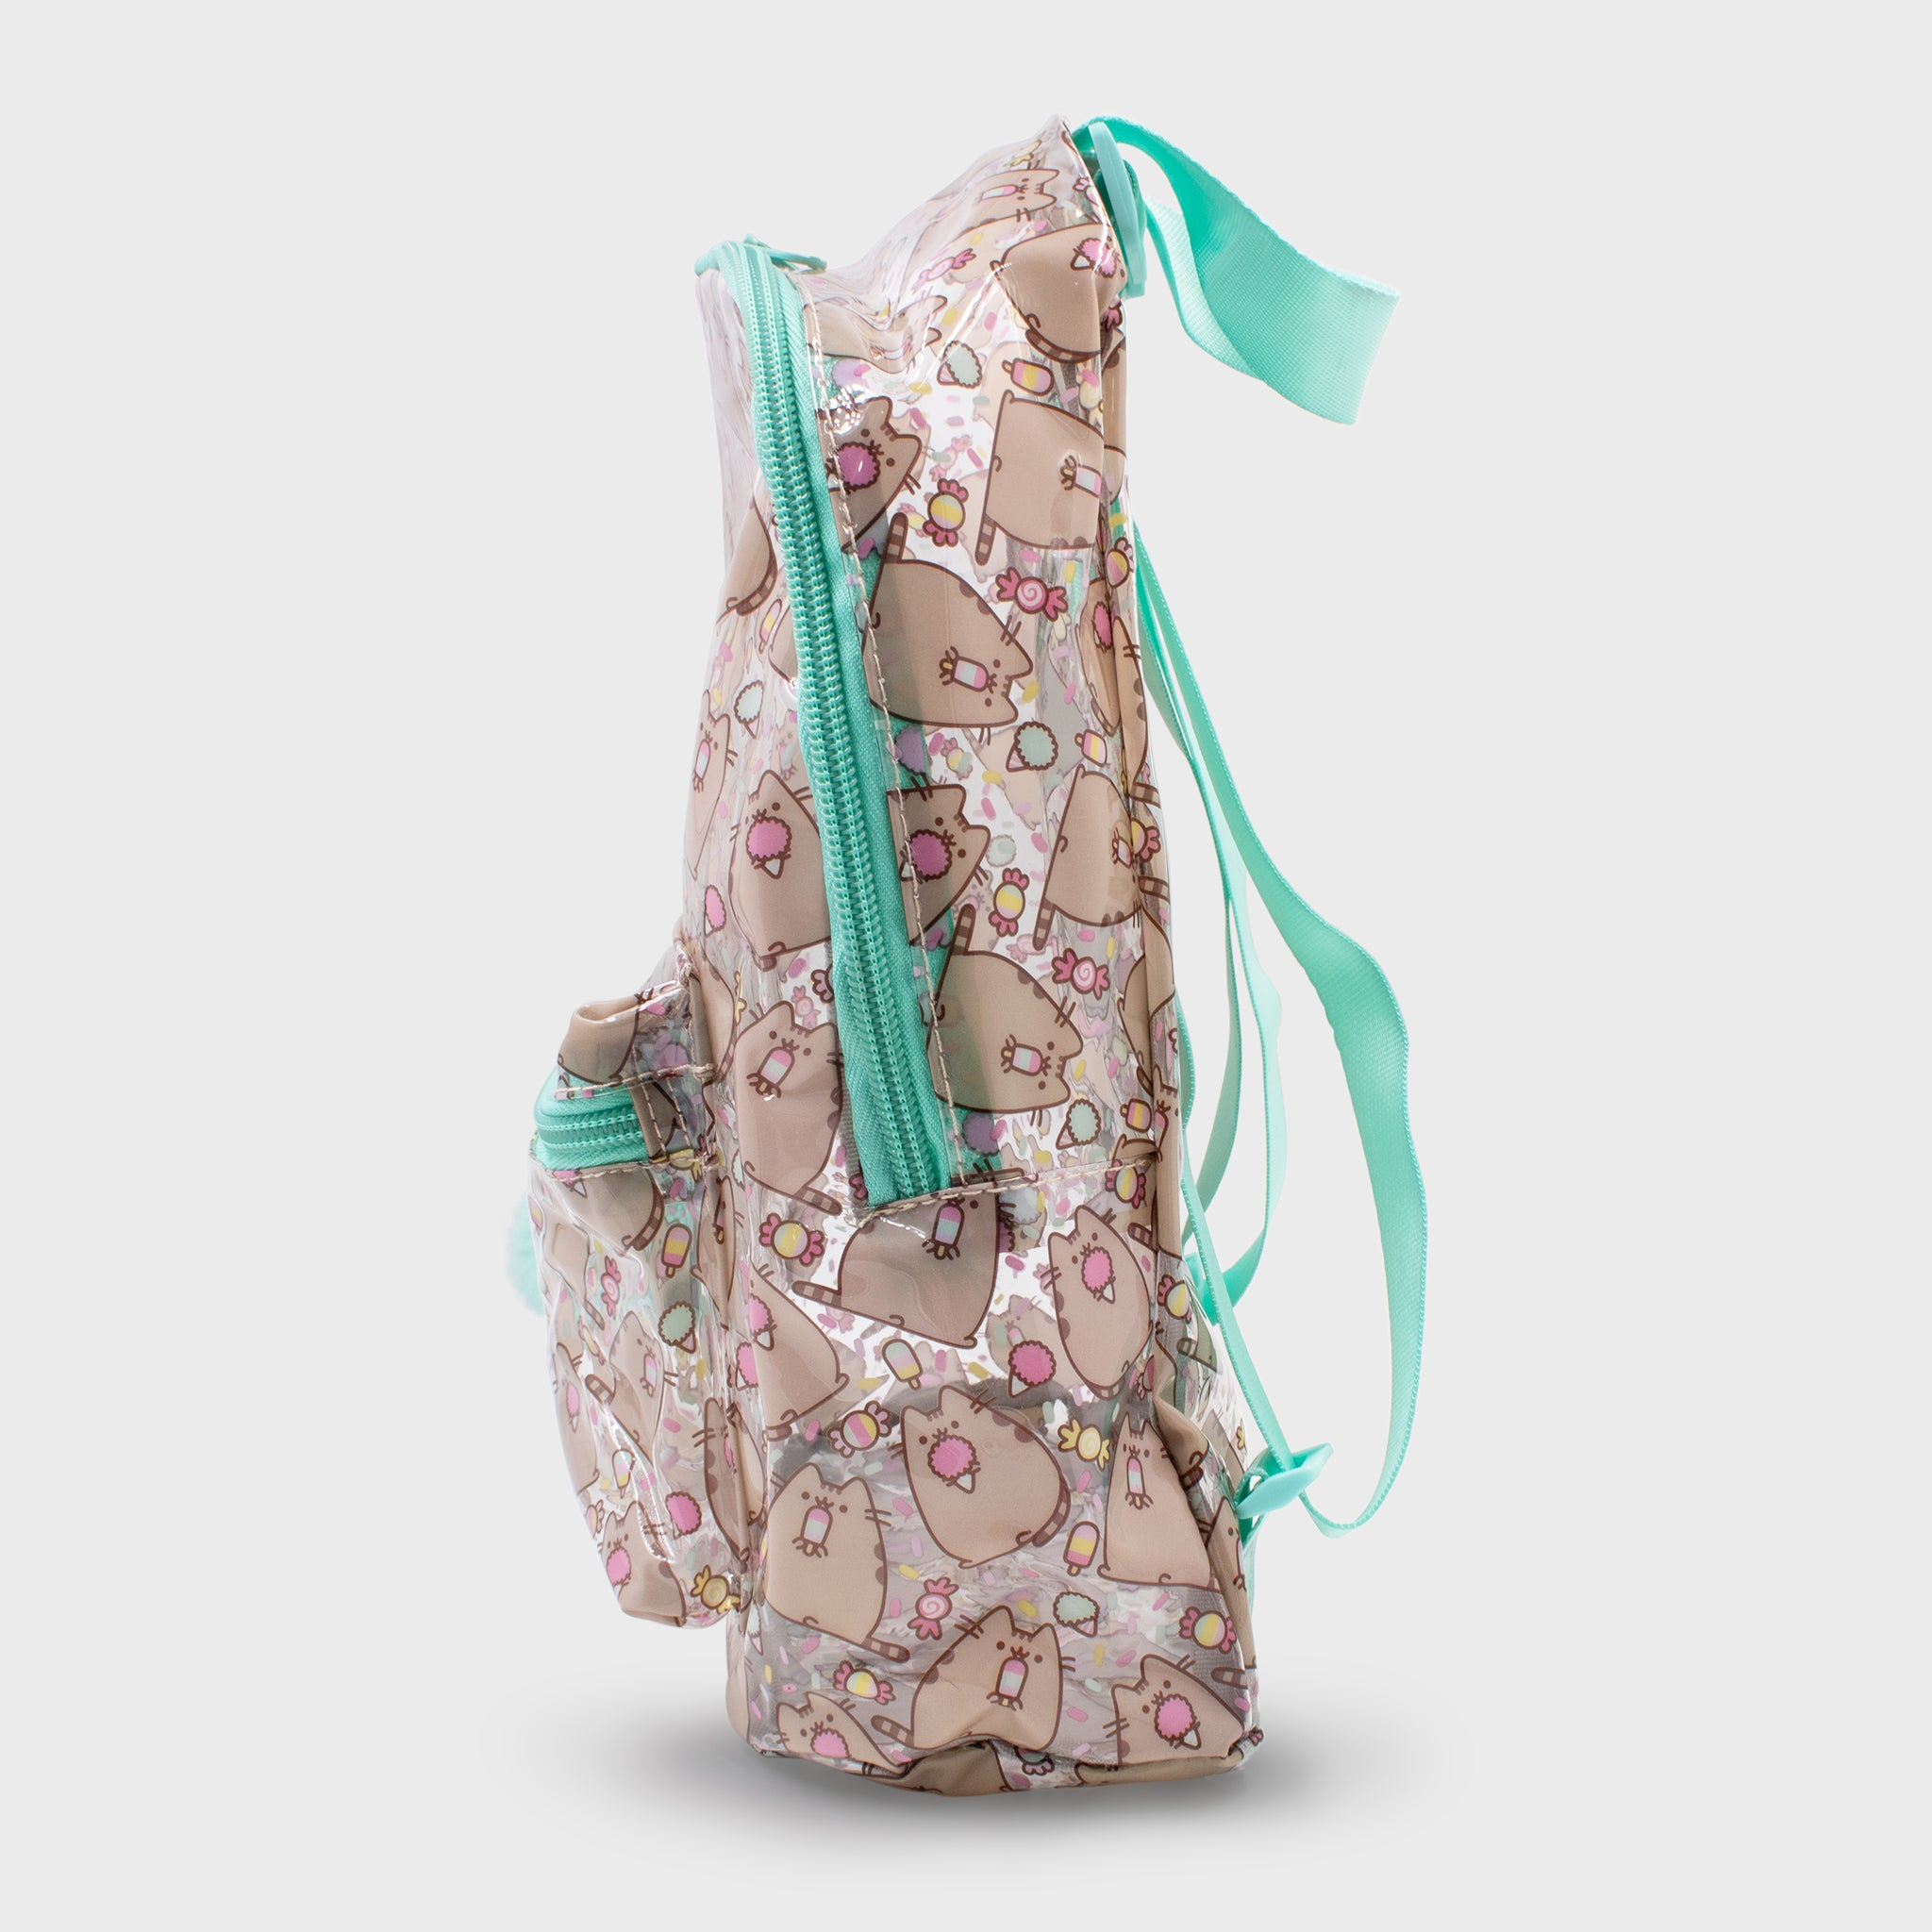 pusheen backpack cute cat back to school ice cream culturefly